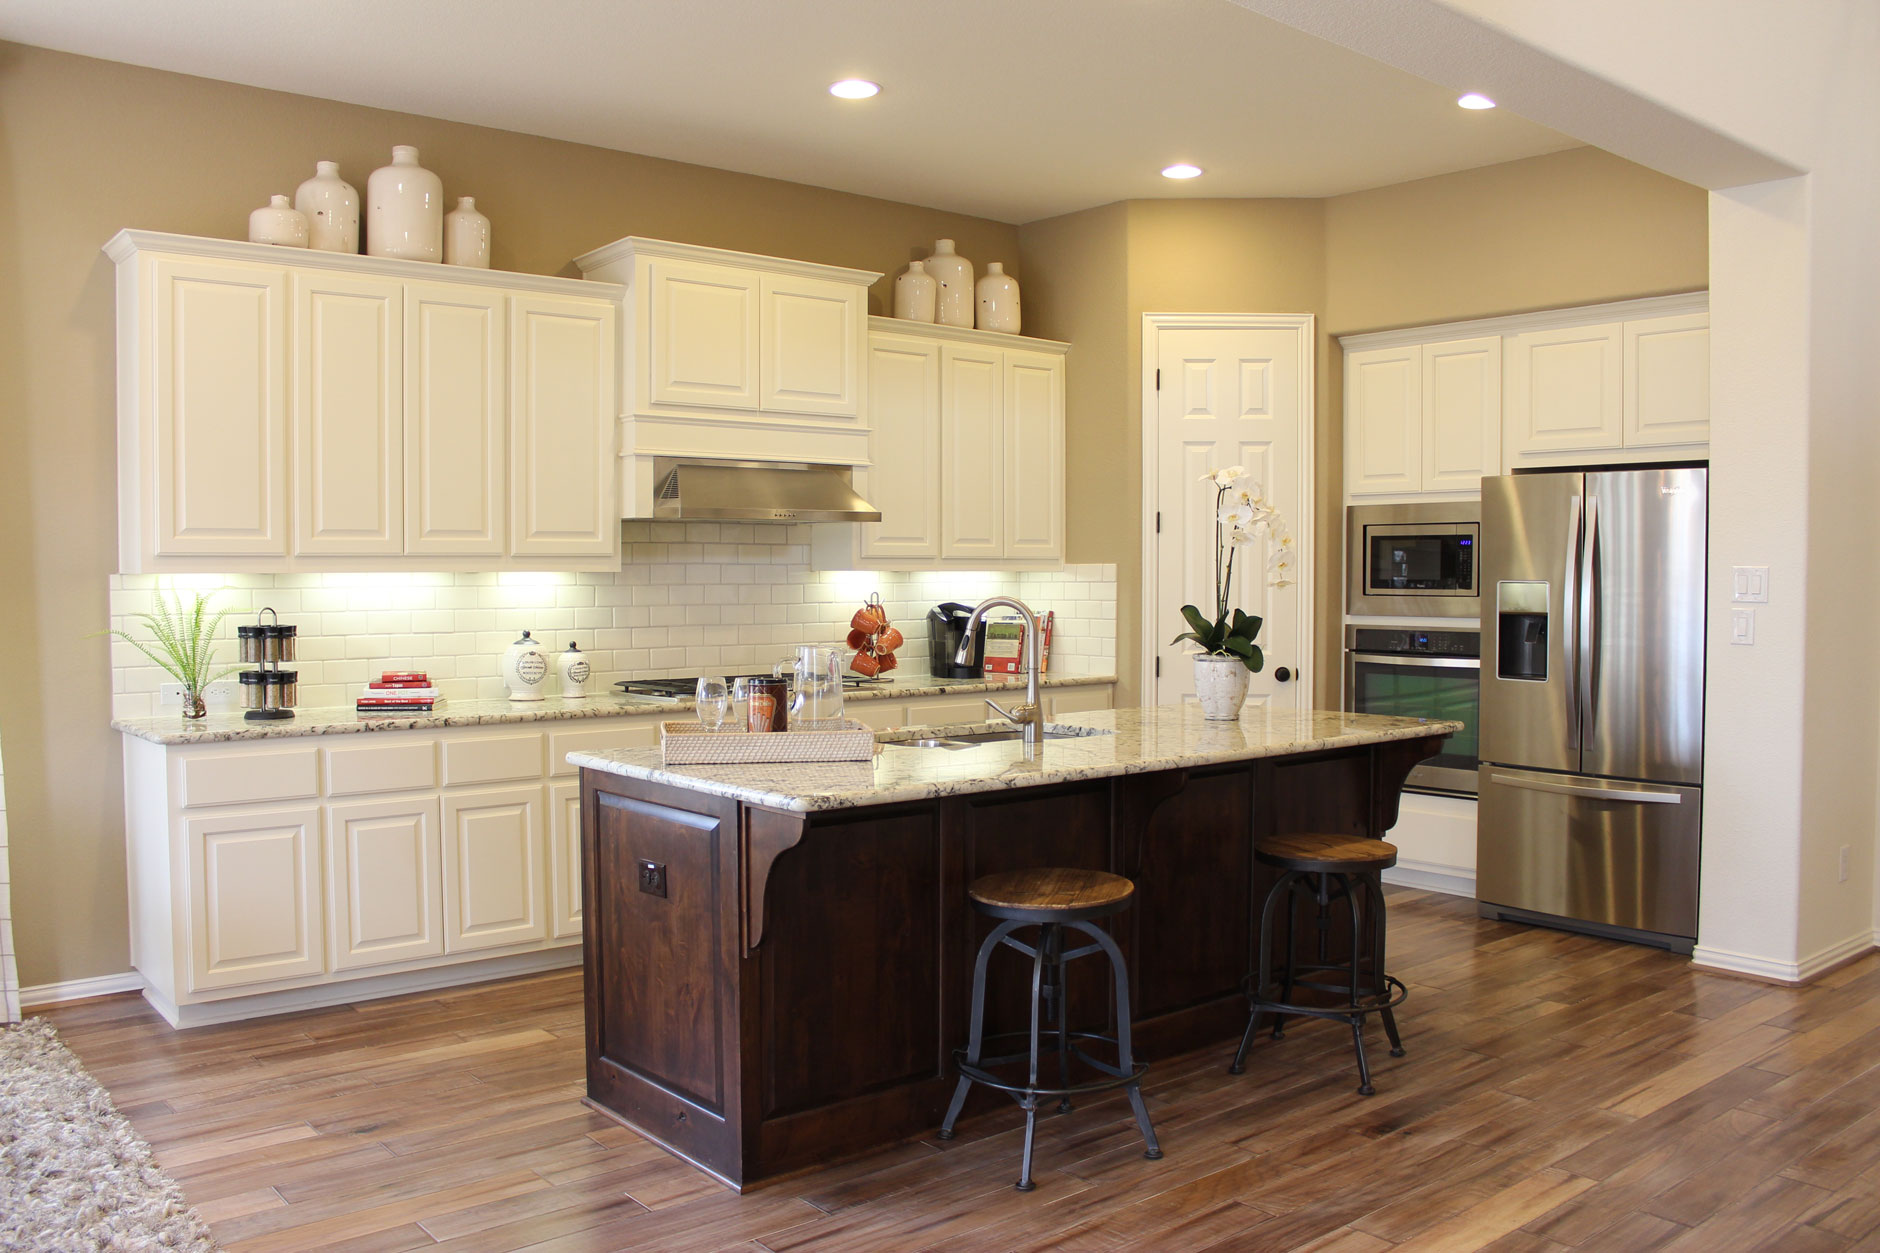 Uncategorized Kitchen Cabinet Colors kitchen cabinet stain colors and wood floor color combinations kitchen